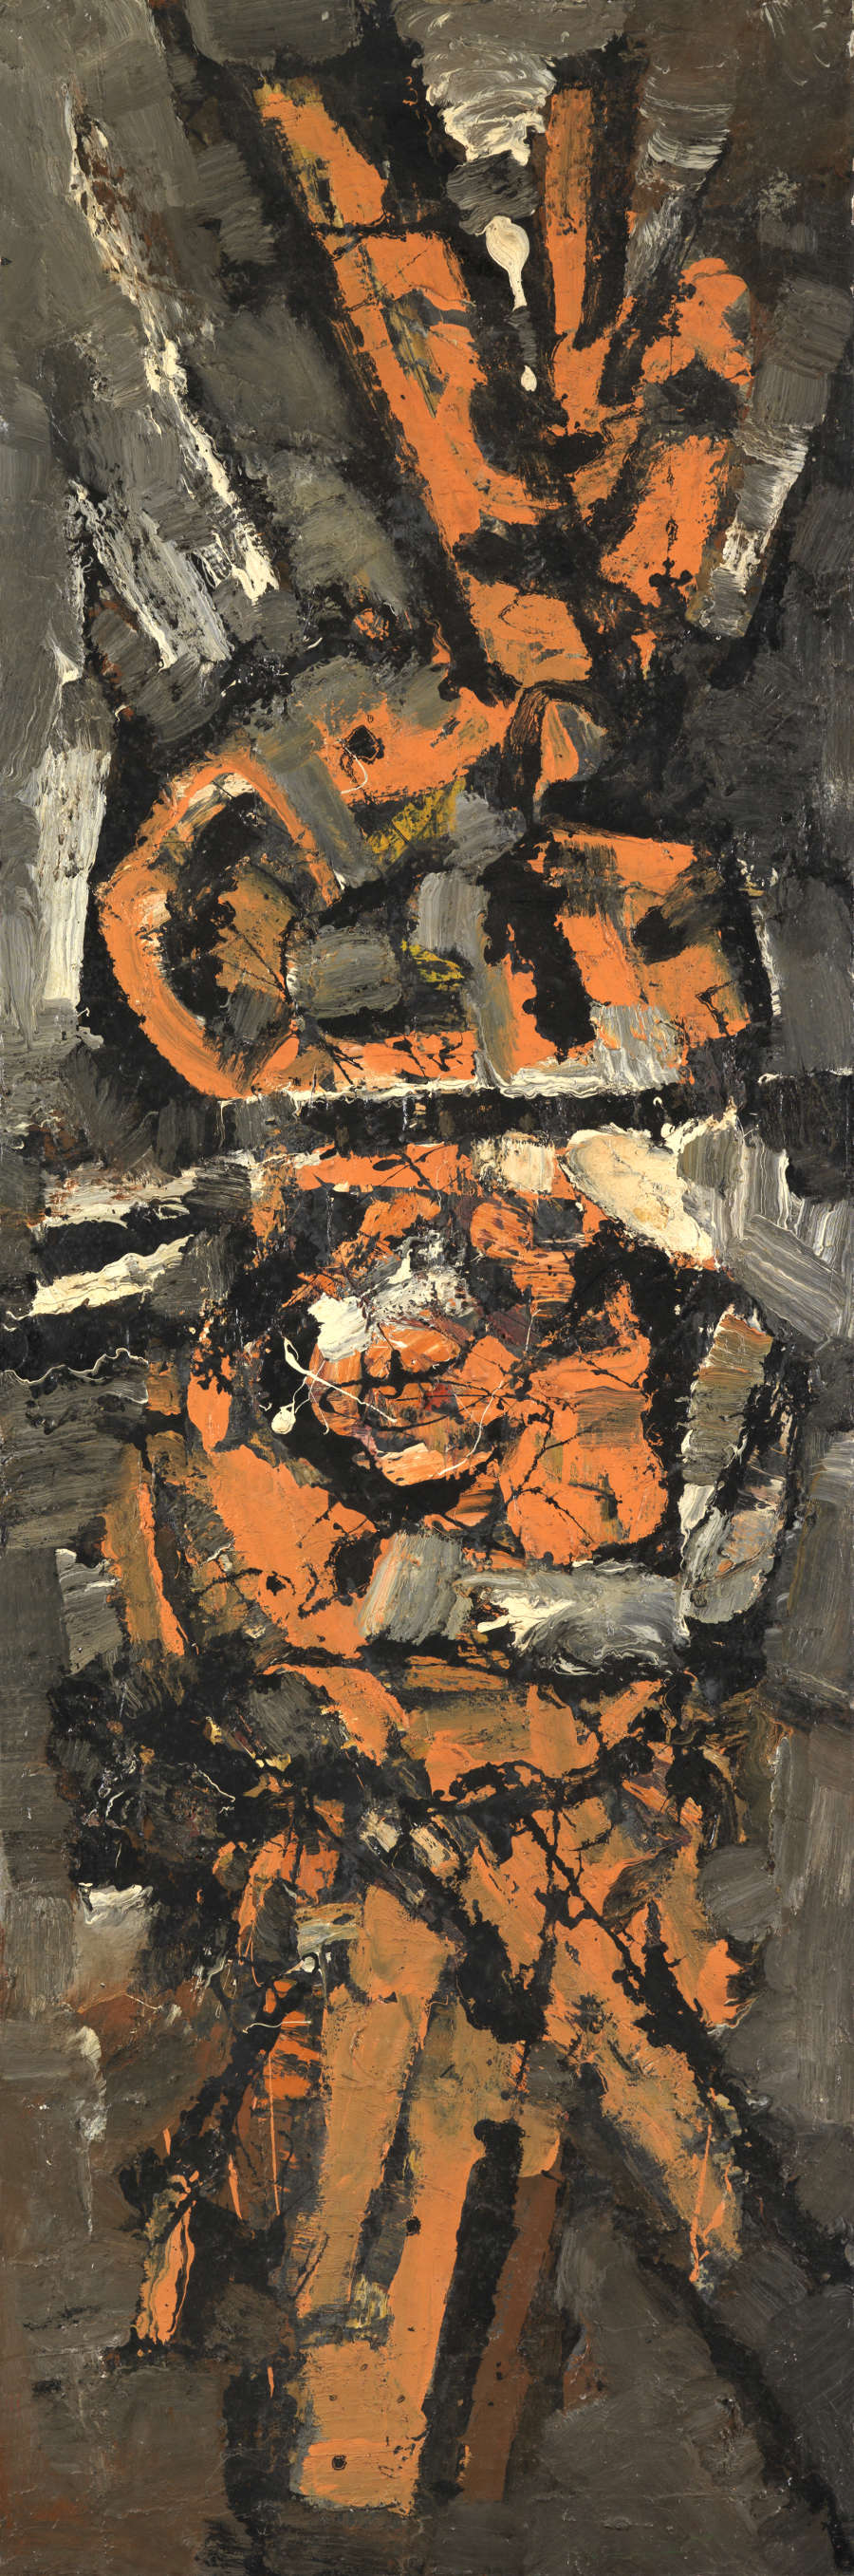 FRANK AVRAY WILSON (1914-2009), FAW820 - TRIBUTE TO CARBON ATOM, 1958. Oil on canvas 183 x 60 cm. Signed, dated 'Nov 1958' and titled verso